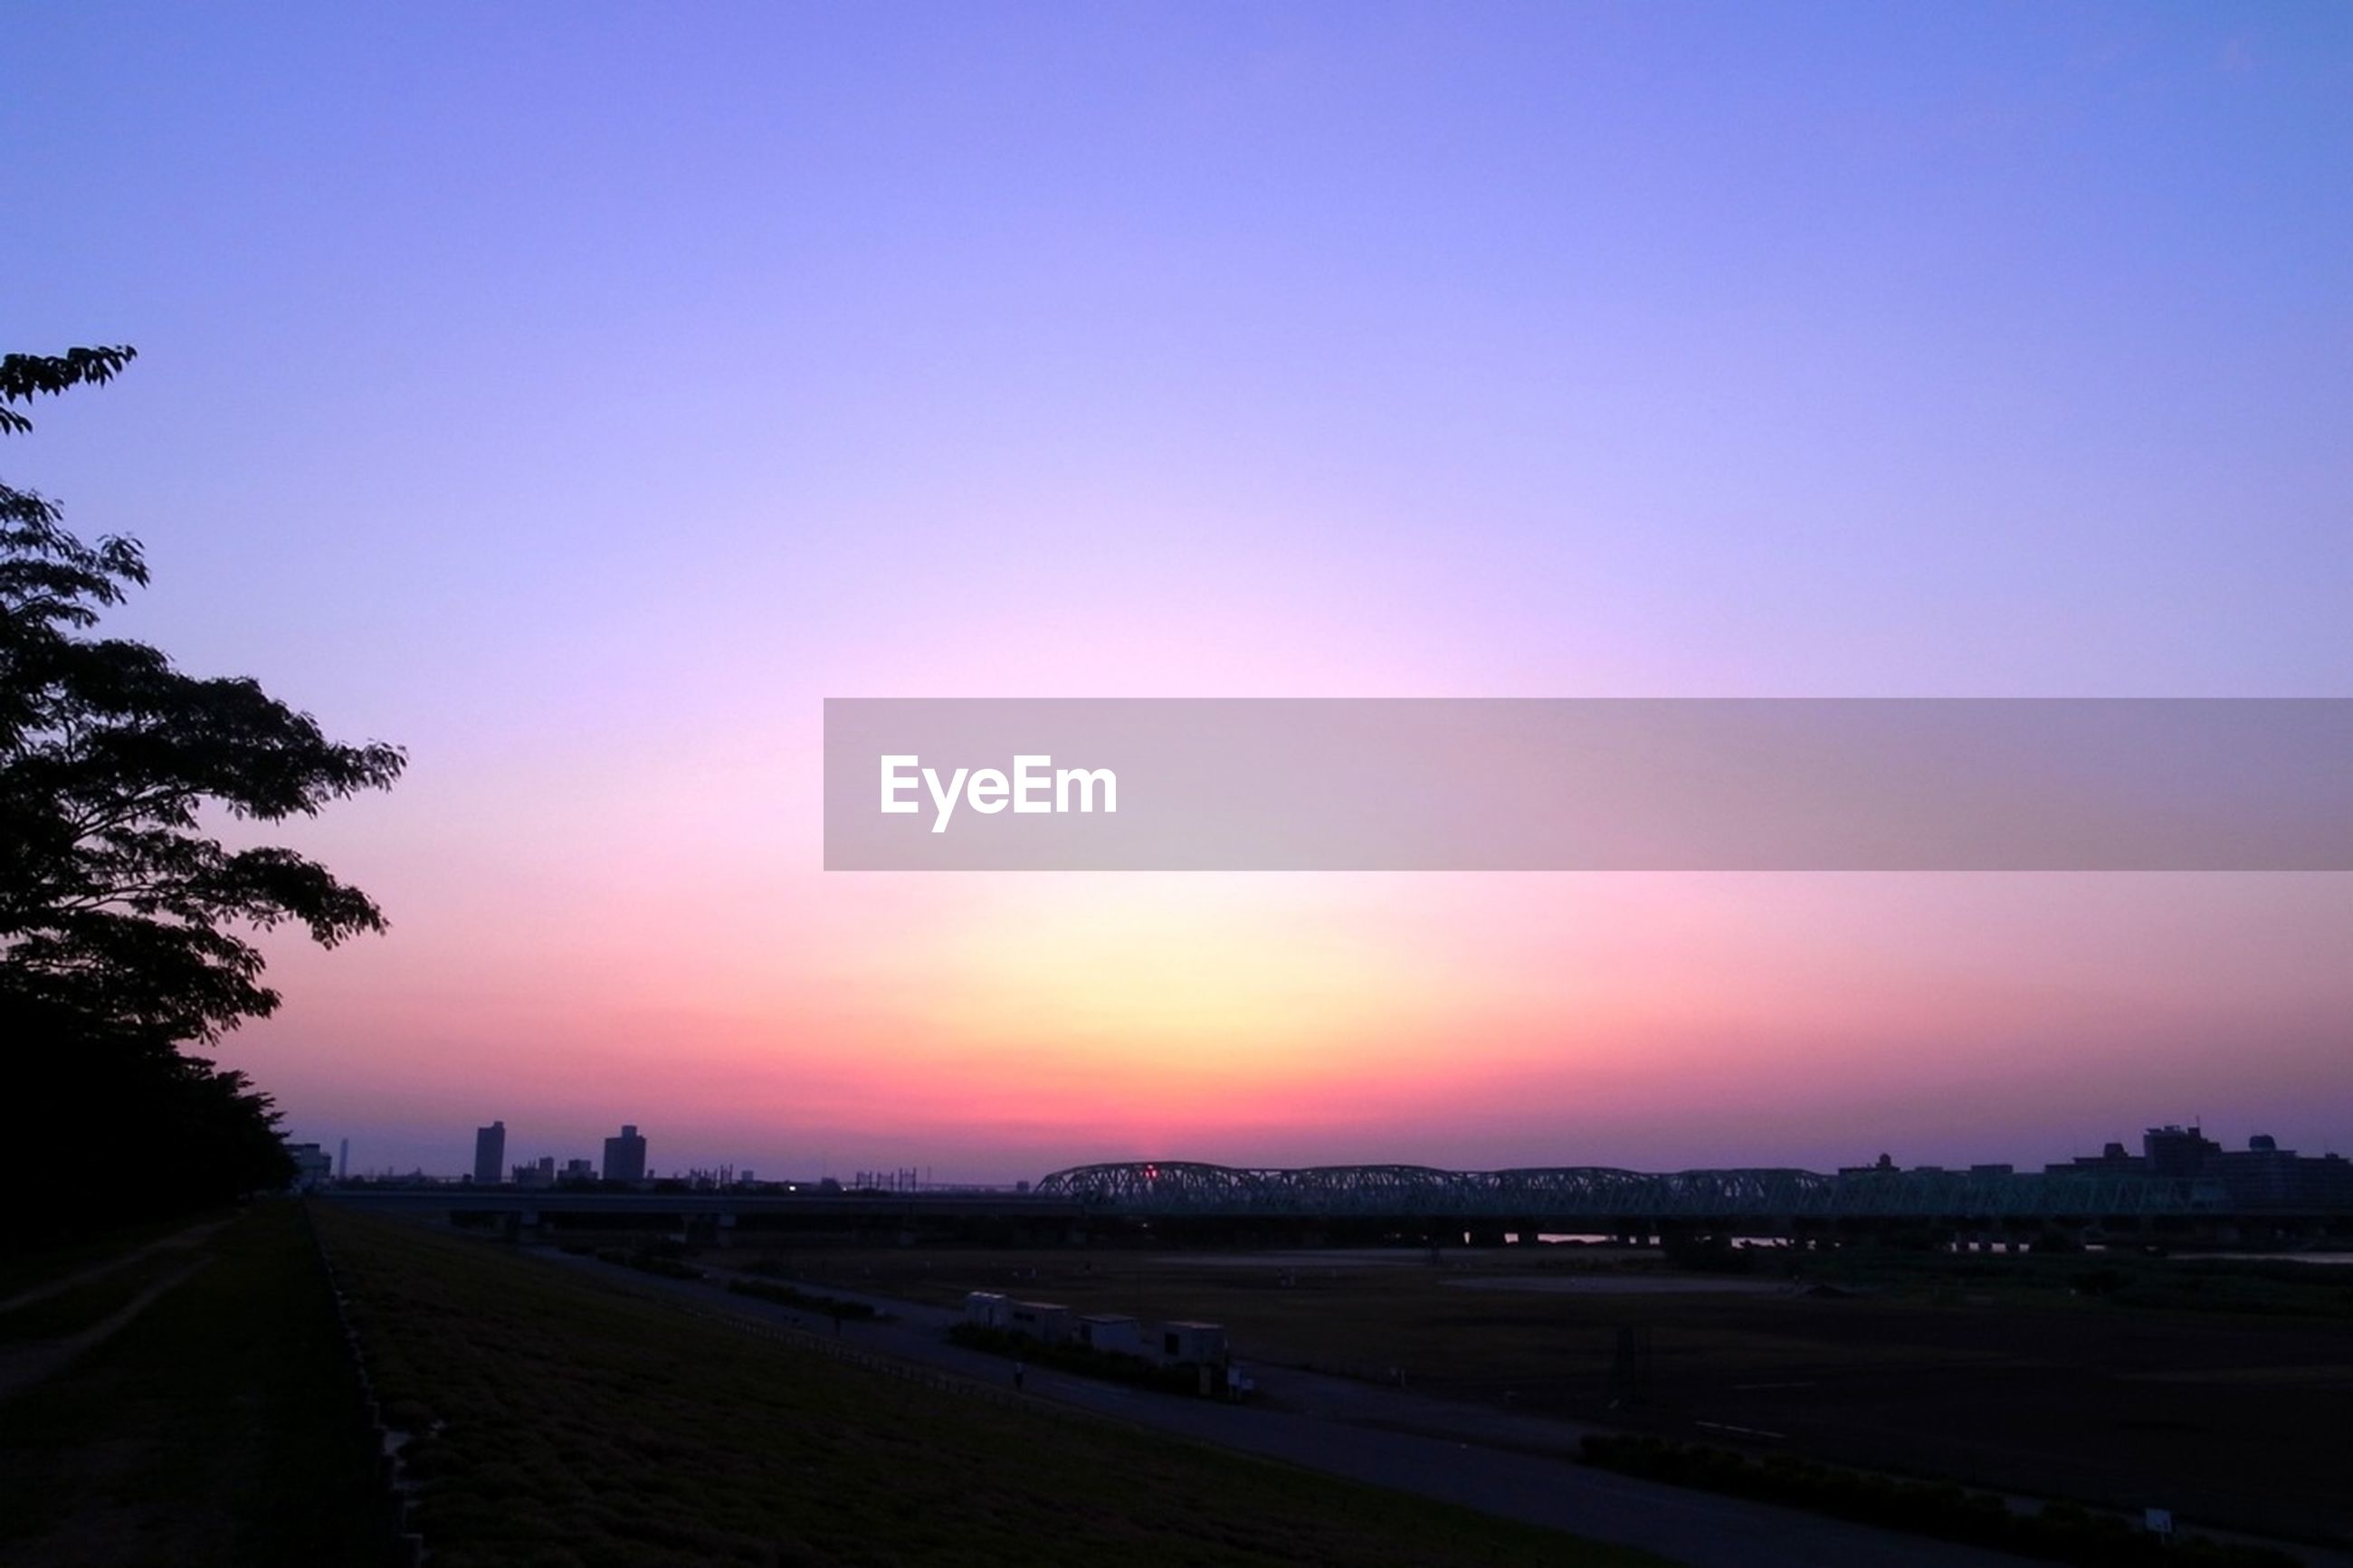 sunset, copy space, clear sky, road, transportation, the way forward, landscape, tranquility, silhouette, tranquil scene, sky, road marking, dusk, street, scenics, orange color, nature, field, tree, outdoors